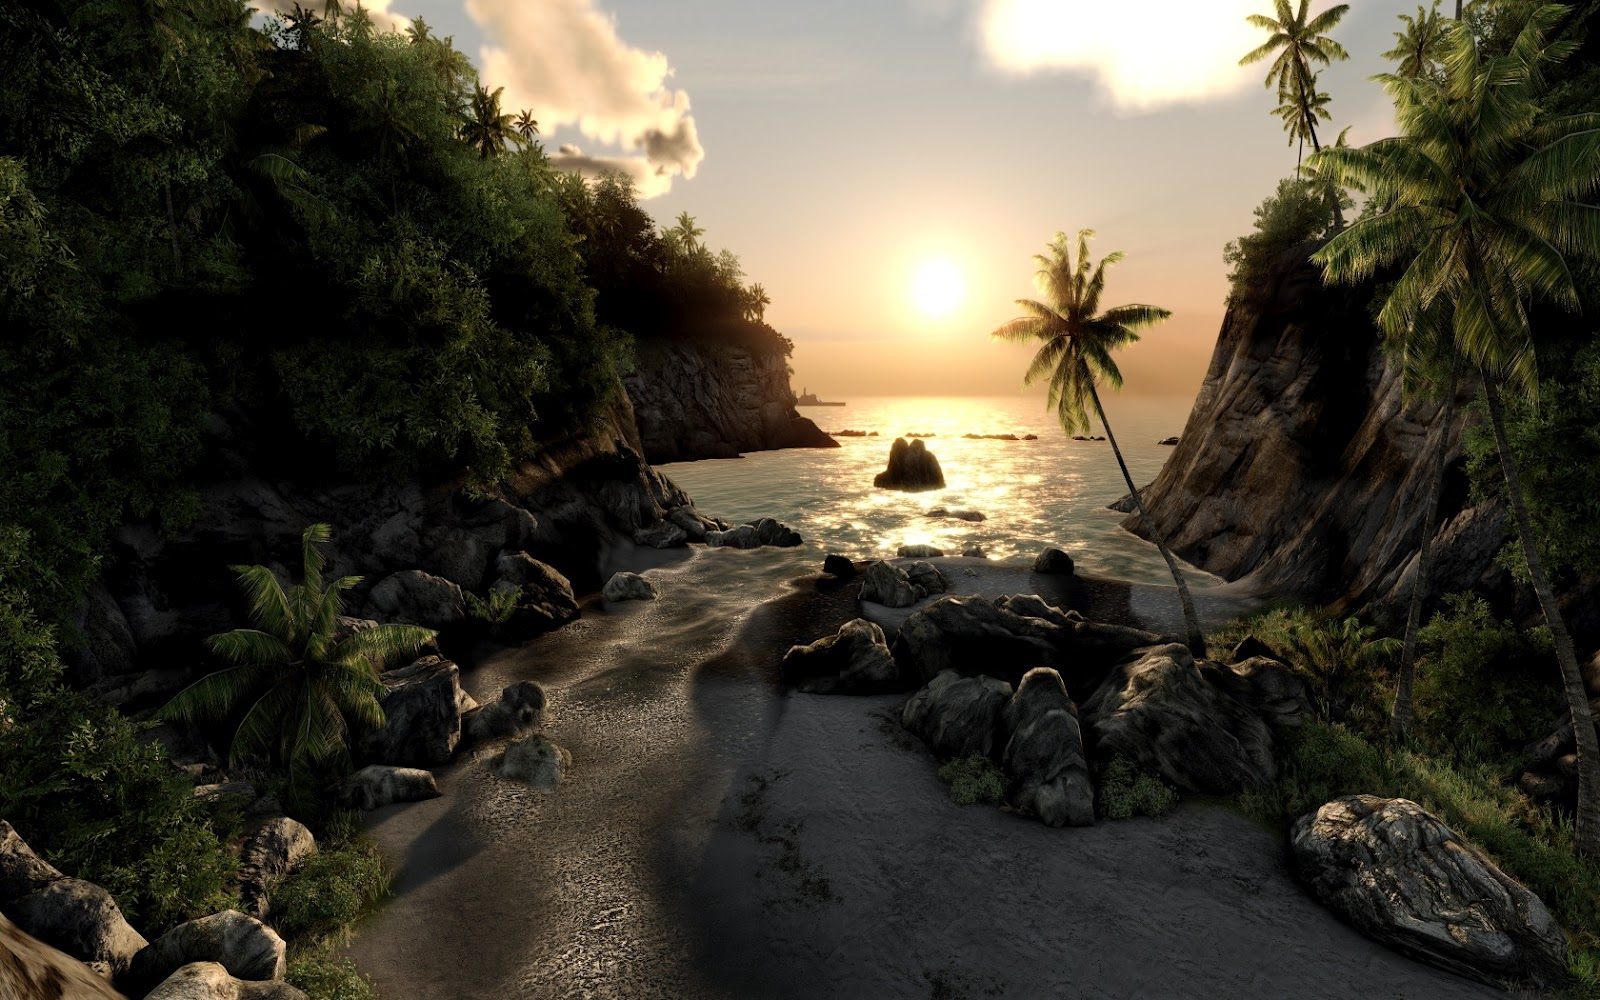 http://3.bp.blogspot.com/--7flS-n5qDk/UAUZAah6G3I/AAAAAAAABNs/Qx7NuOWdd2k/s1600/crysis+beach+map+landscape+sceneary+wallpaper+background+crytek+frankfurt+first+person+shooter+fps.jpg